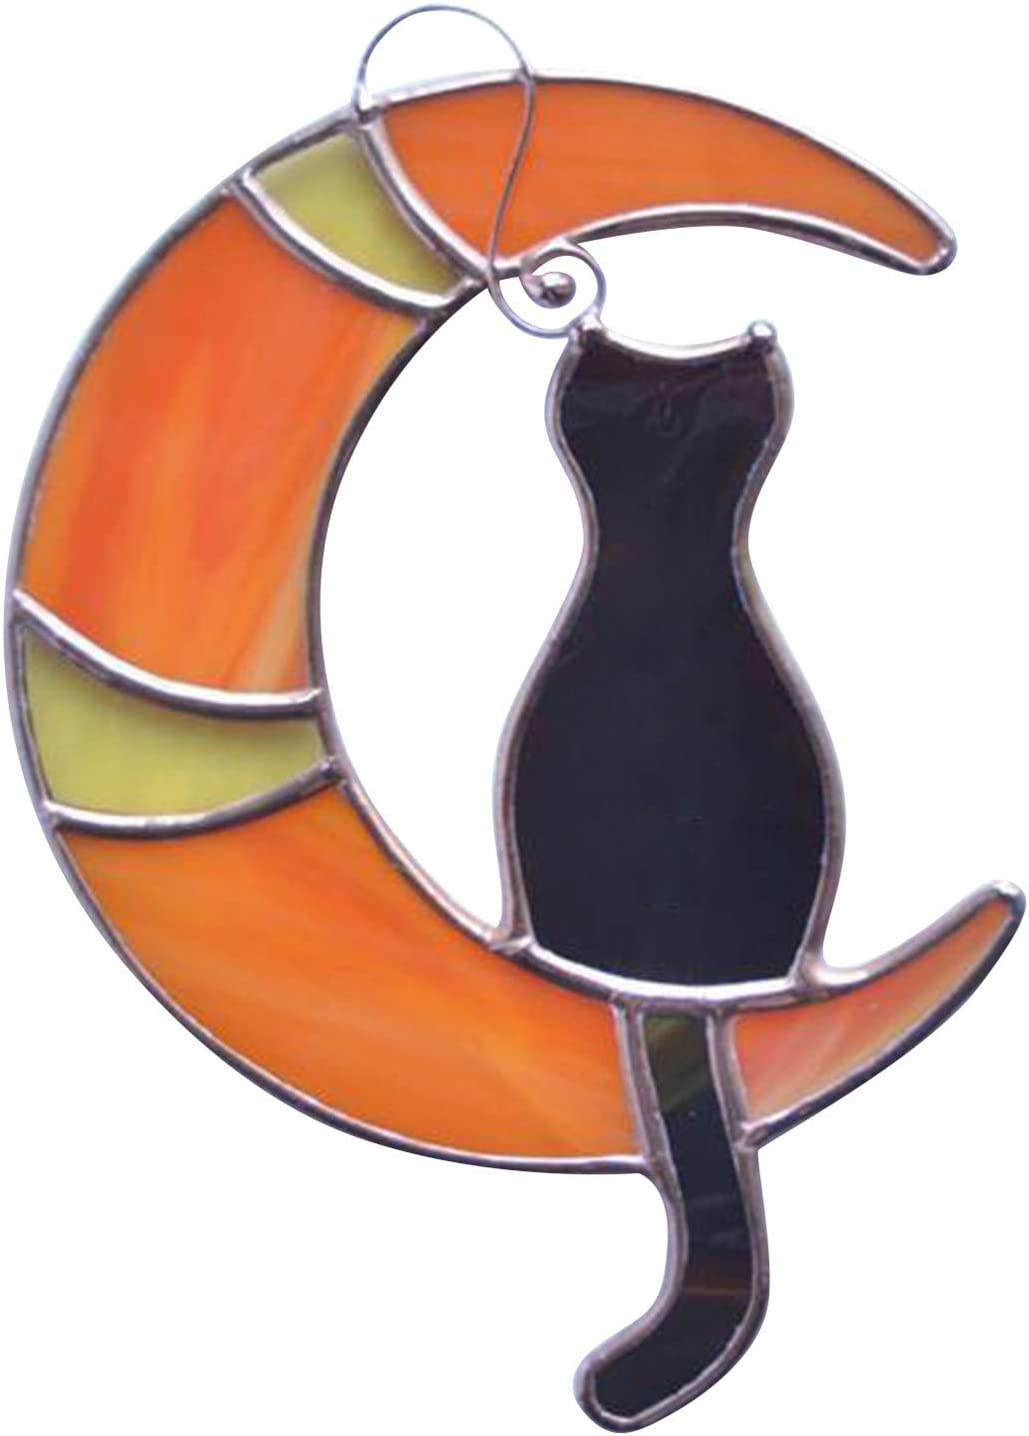 Stained Glass Window Hangings Cute Sun Cat Catcher Decor Moon 5% OFF Weekly update